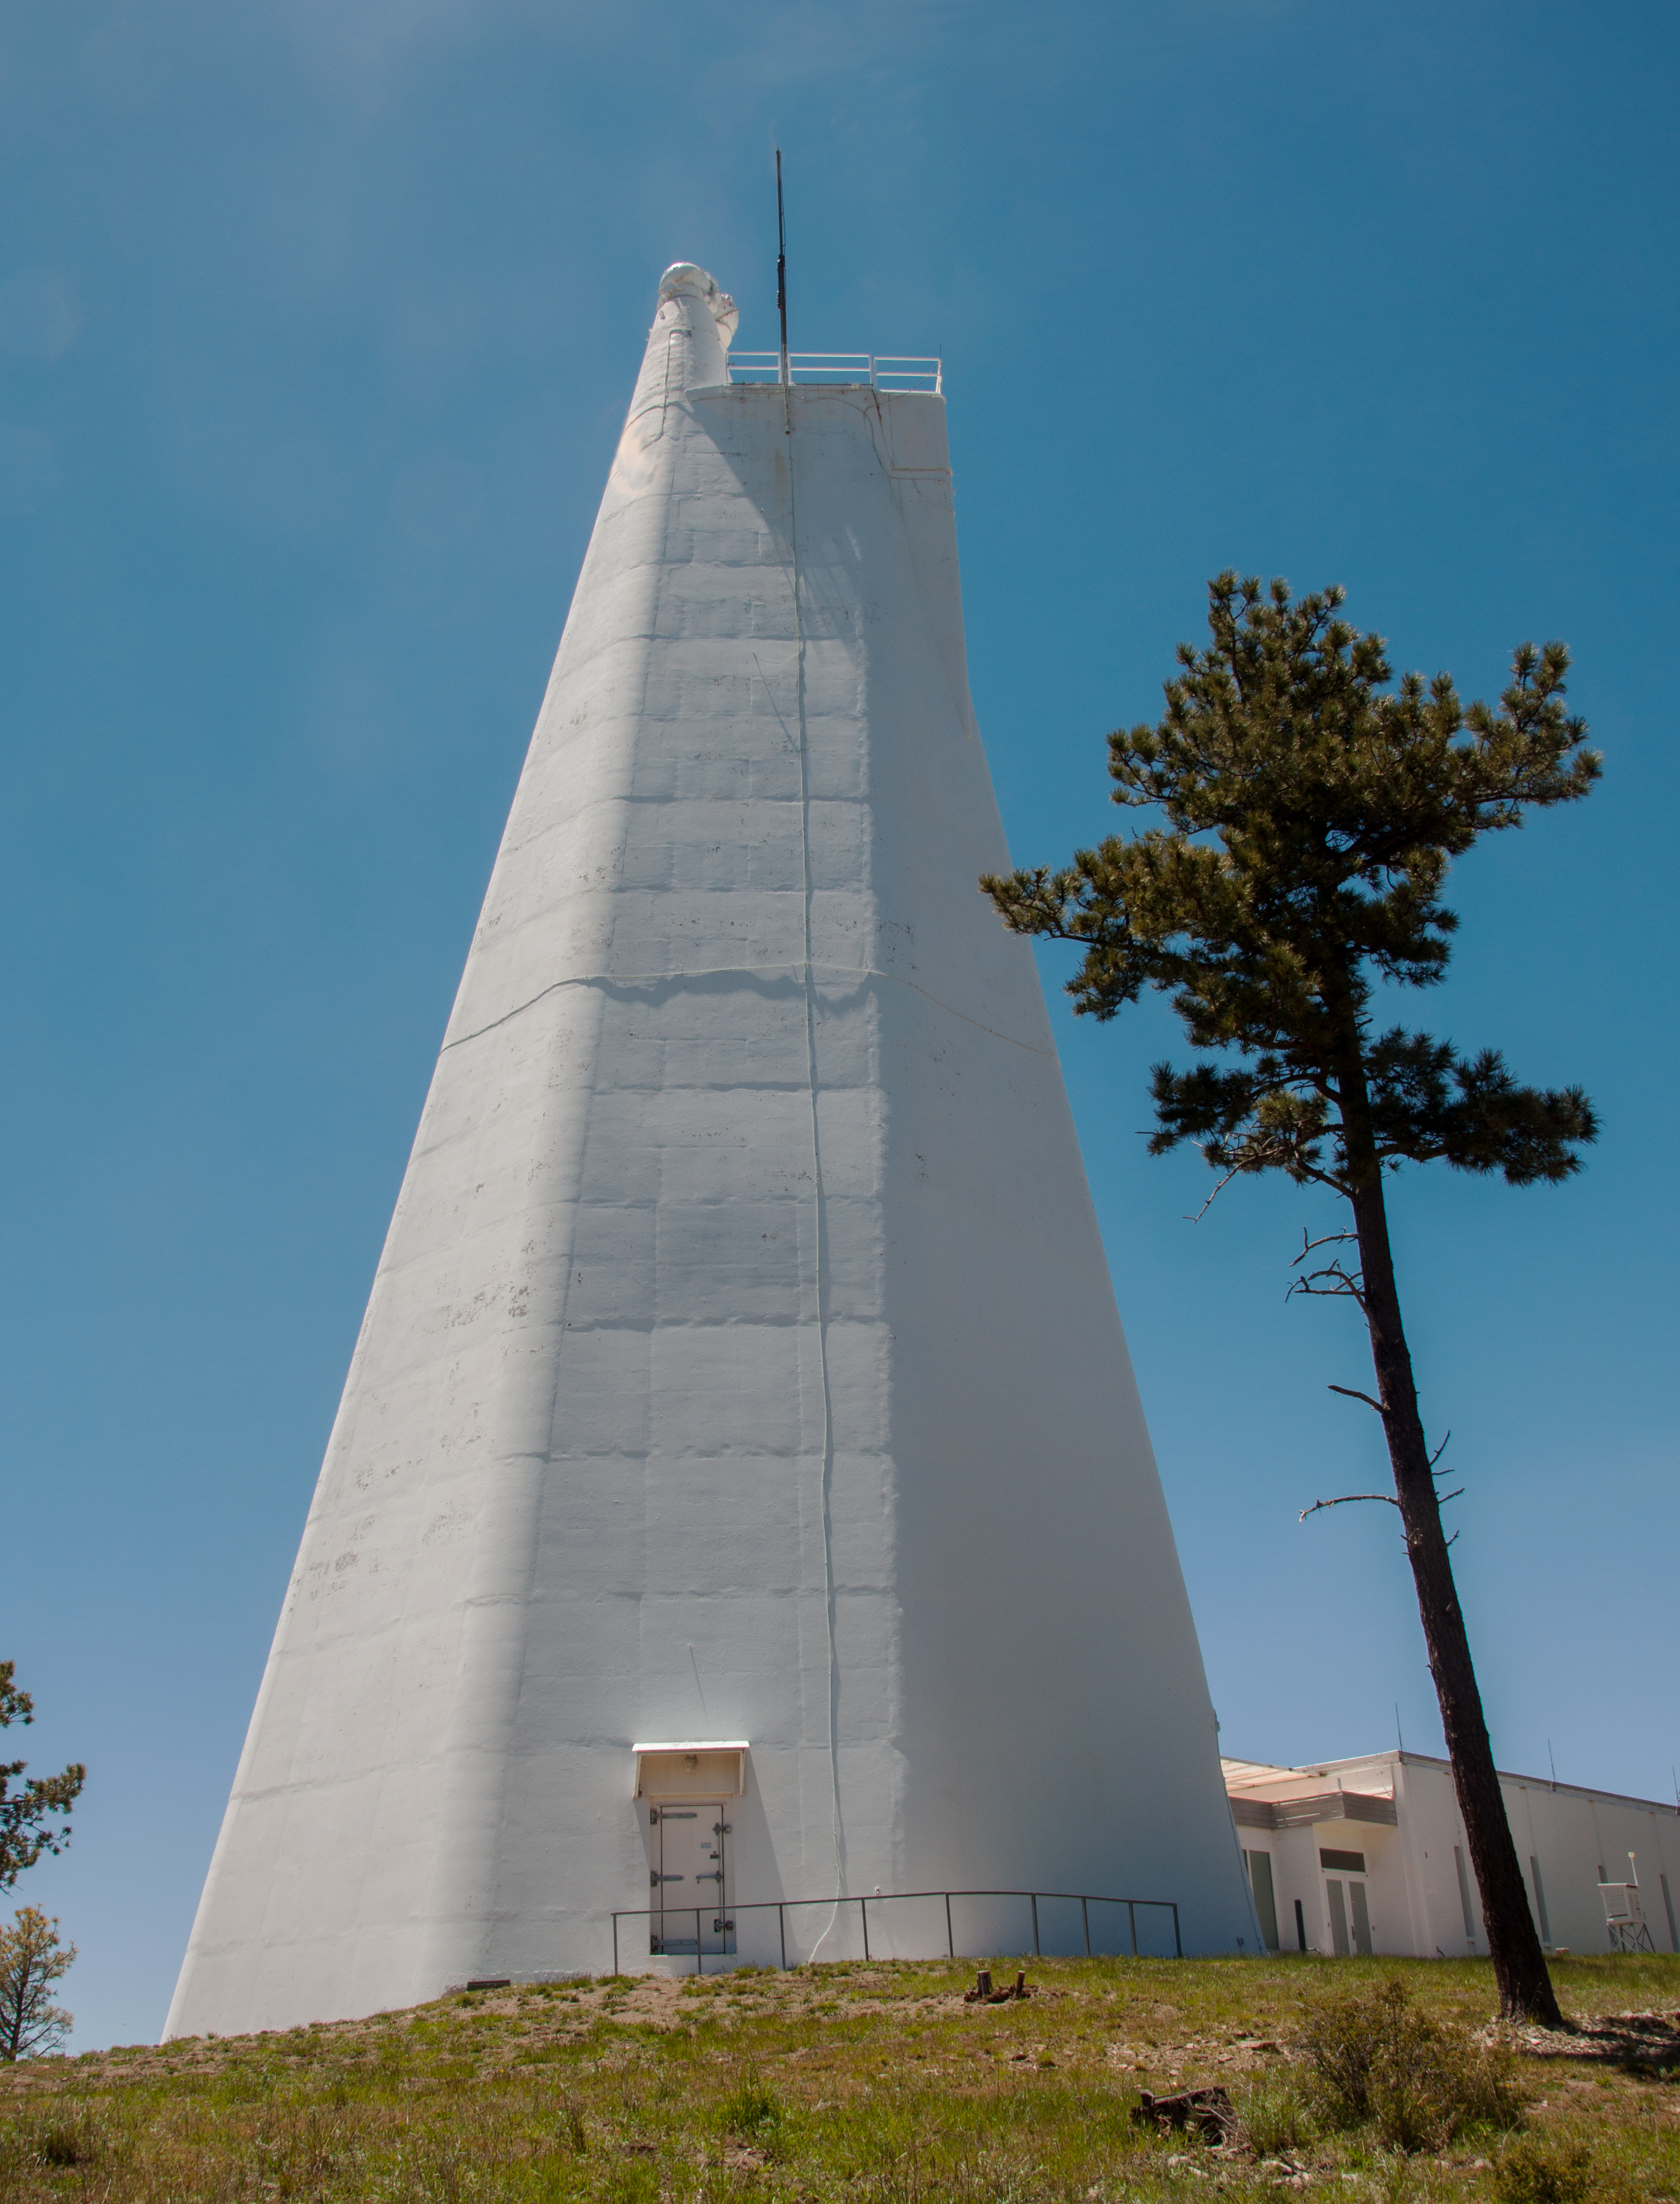 Much of this Richard B. Dunn Solar Telescope found at Sunspot, New Mexico is actually below ground.